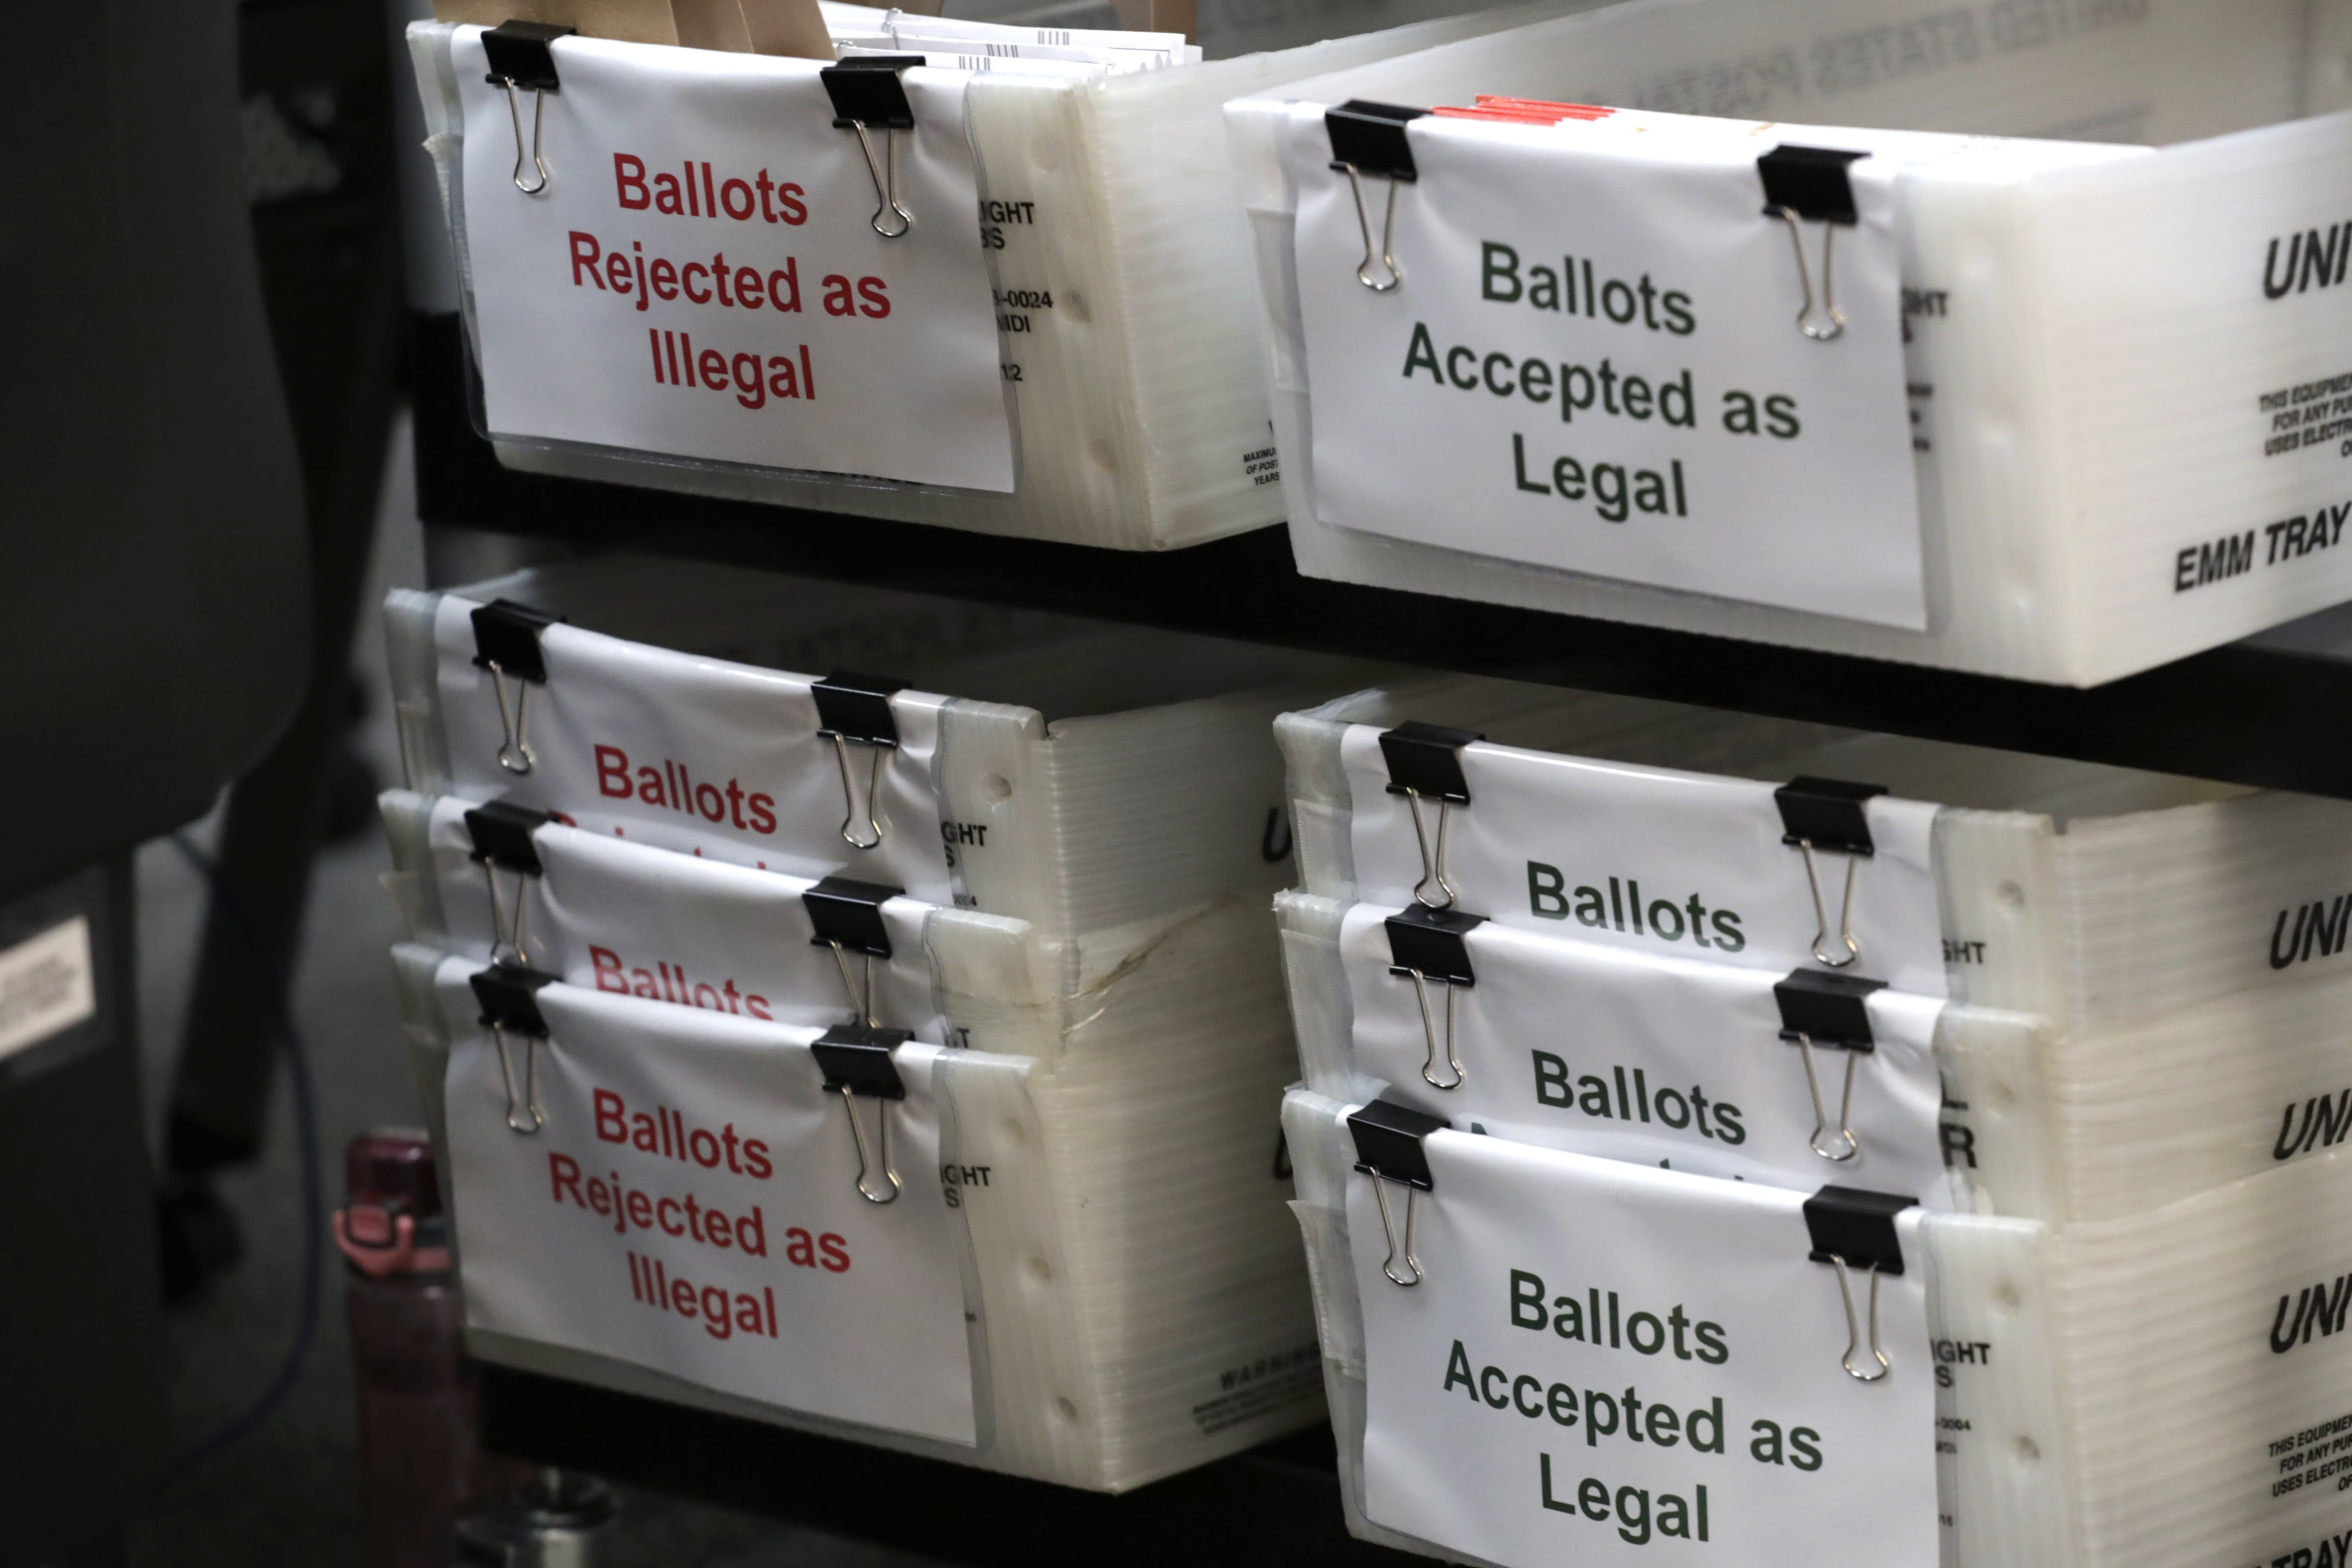 """Boxes for illegal and legal vote-by-mail ballots are shown as the the Miami-Dade County canvassing board meets to verify signatures on vote-by-mail ballots for the August 18 primary election at the Miami-Dade County Elections Department, Thursday, July 30, 2020, in Doral, Fla. President Donald Trump is for the first time publicly floating a """"delay"""" to the Nov. 3 presidential election, as he makes unsubstantiated allegations that increased mail-in voting will result in fraud. (AP Photo/Lynne Sladky)"""